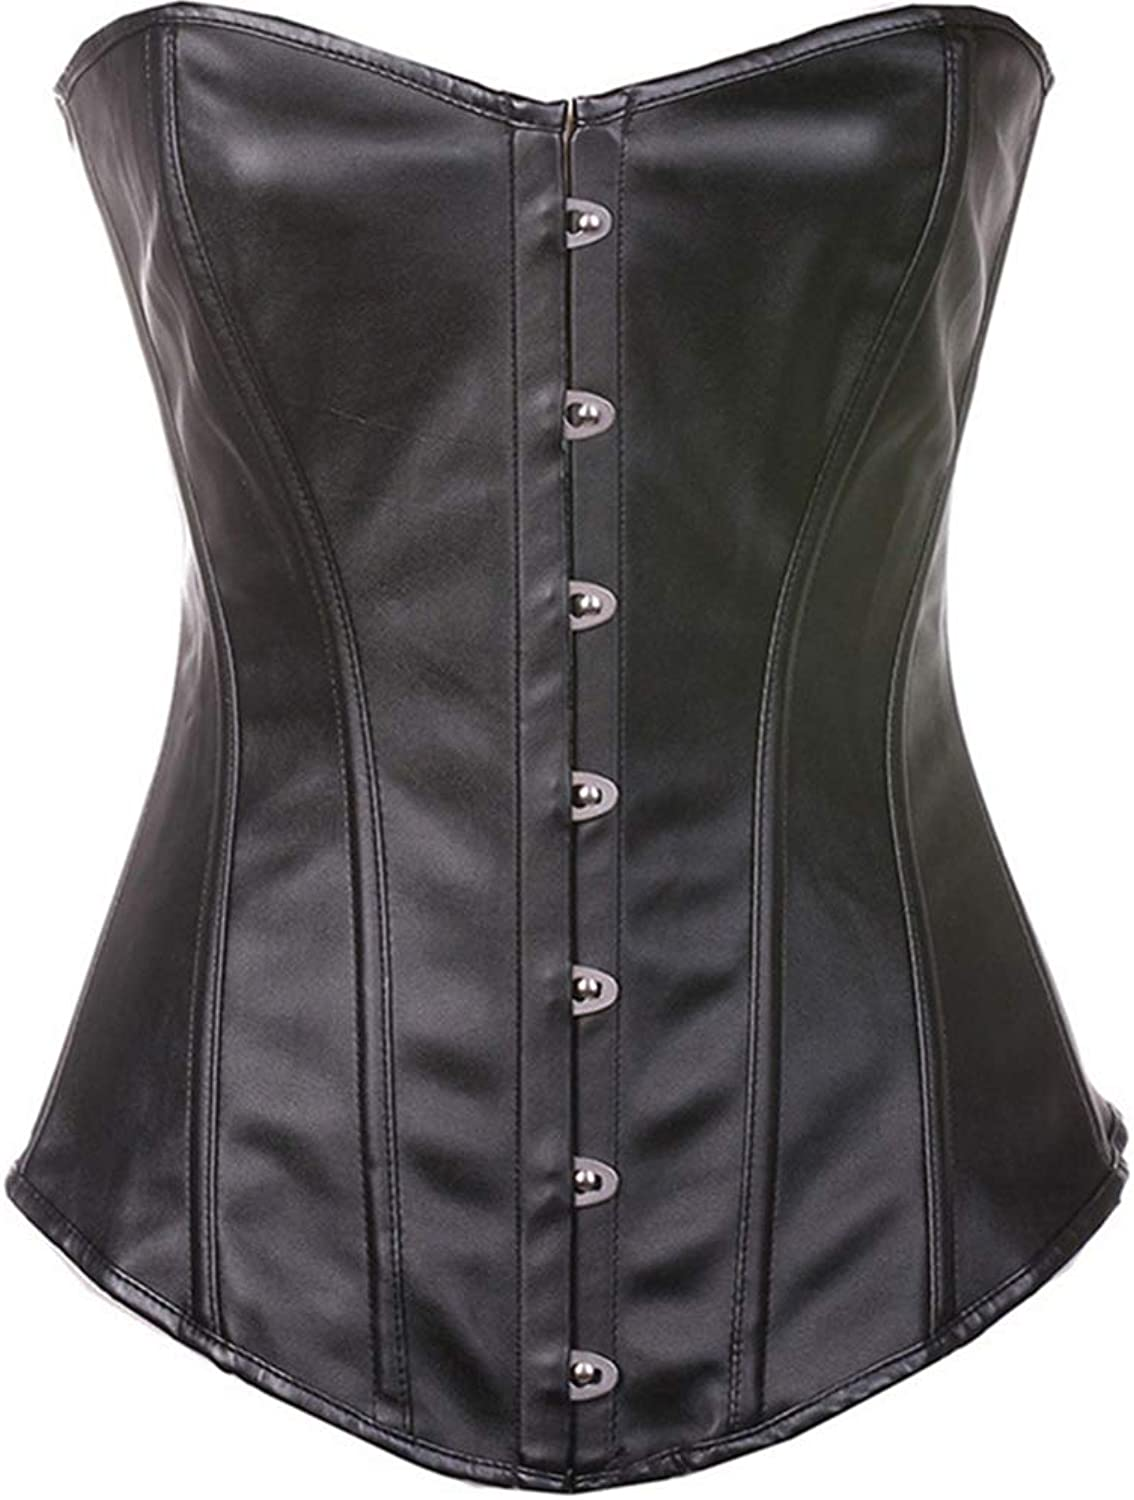 Sexy Women's Clothing Leather Palace Corset PU Steel Buckle Corset Breast Corset Black Red,Black,XXL